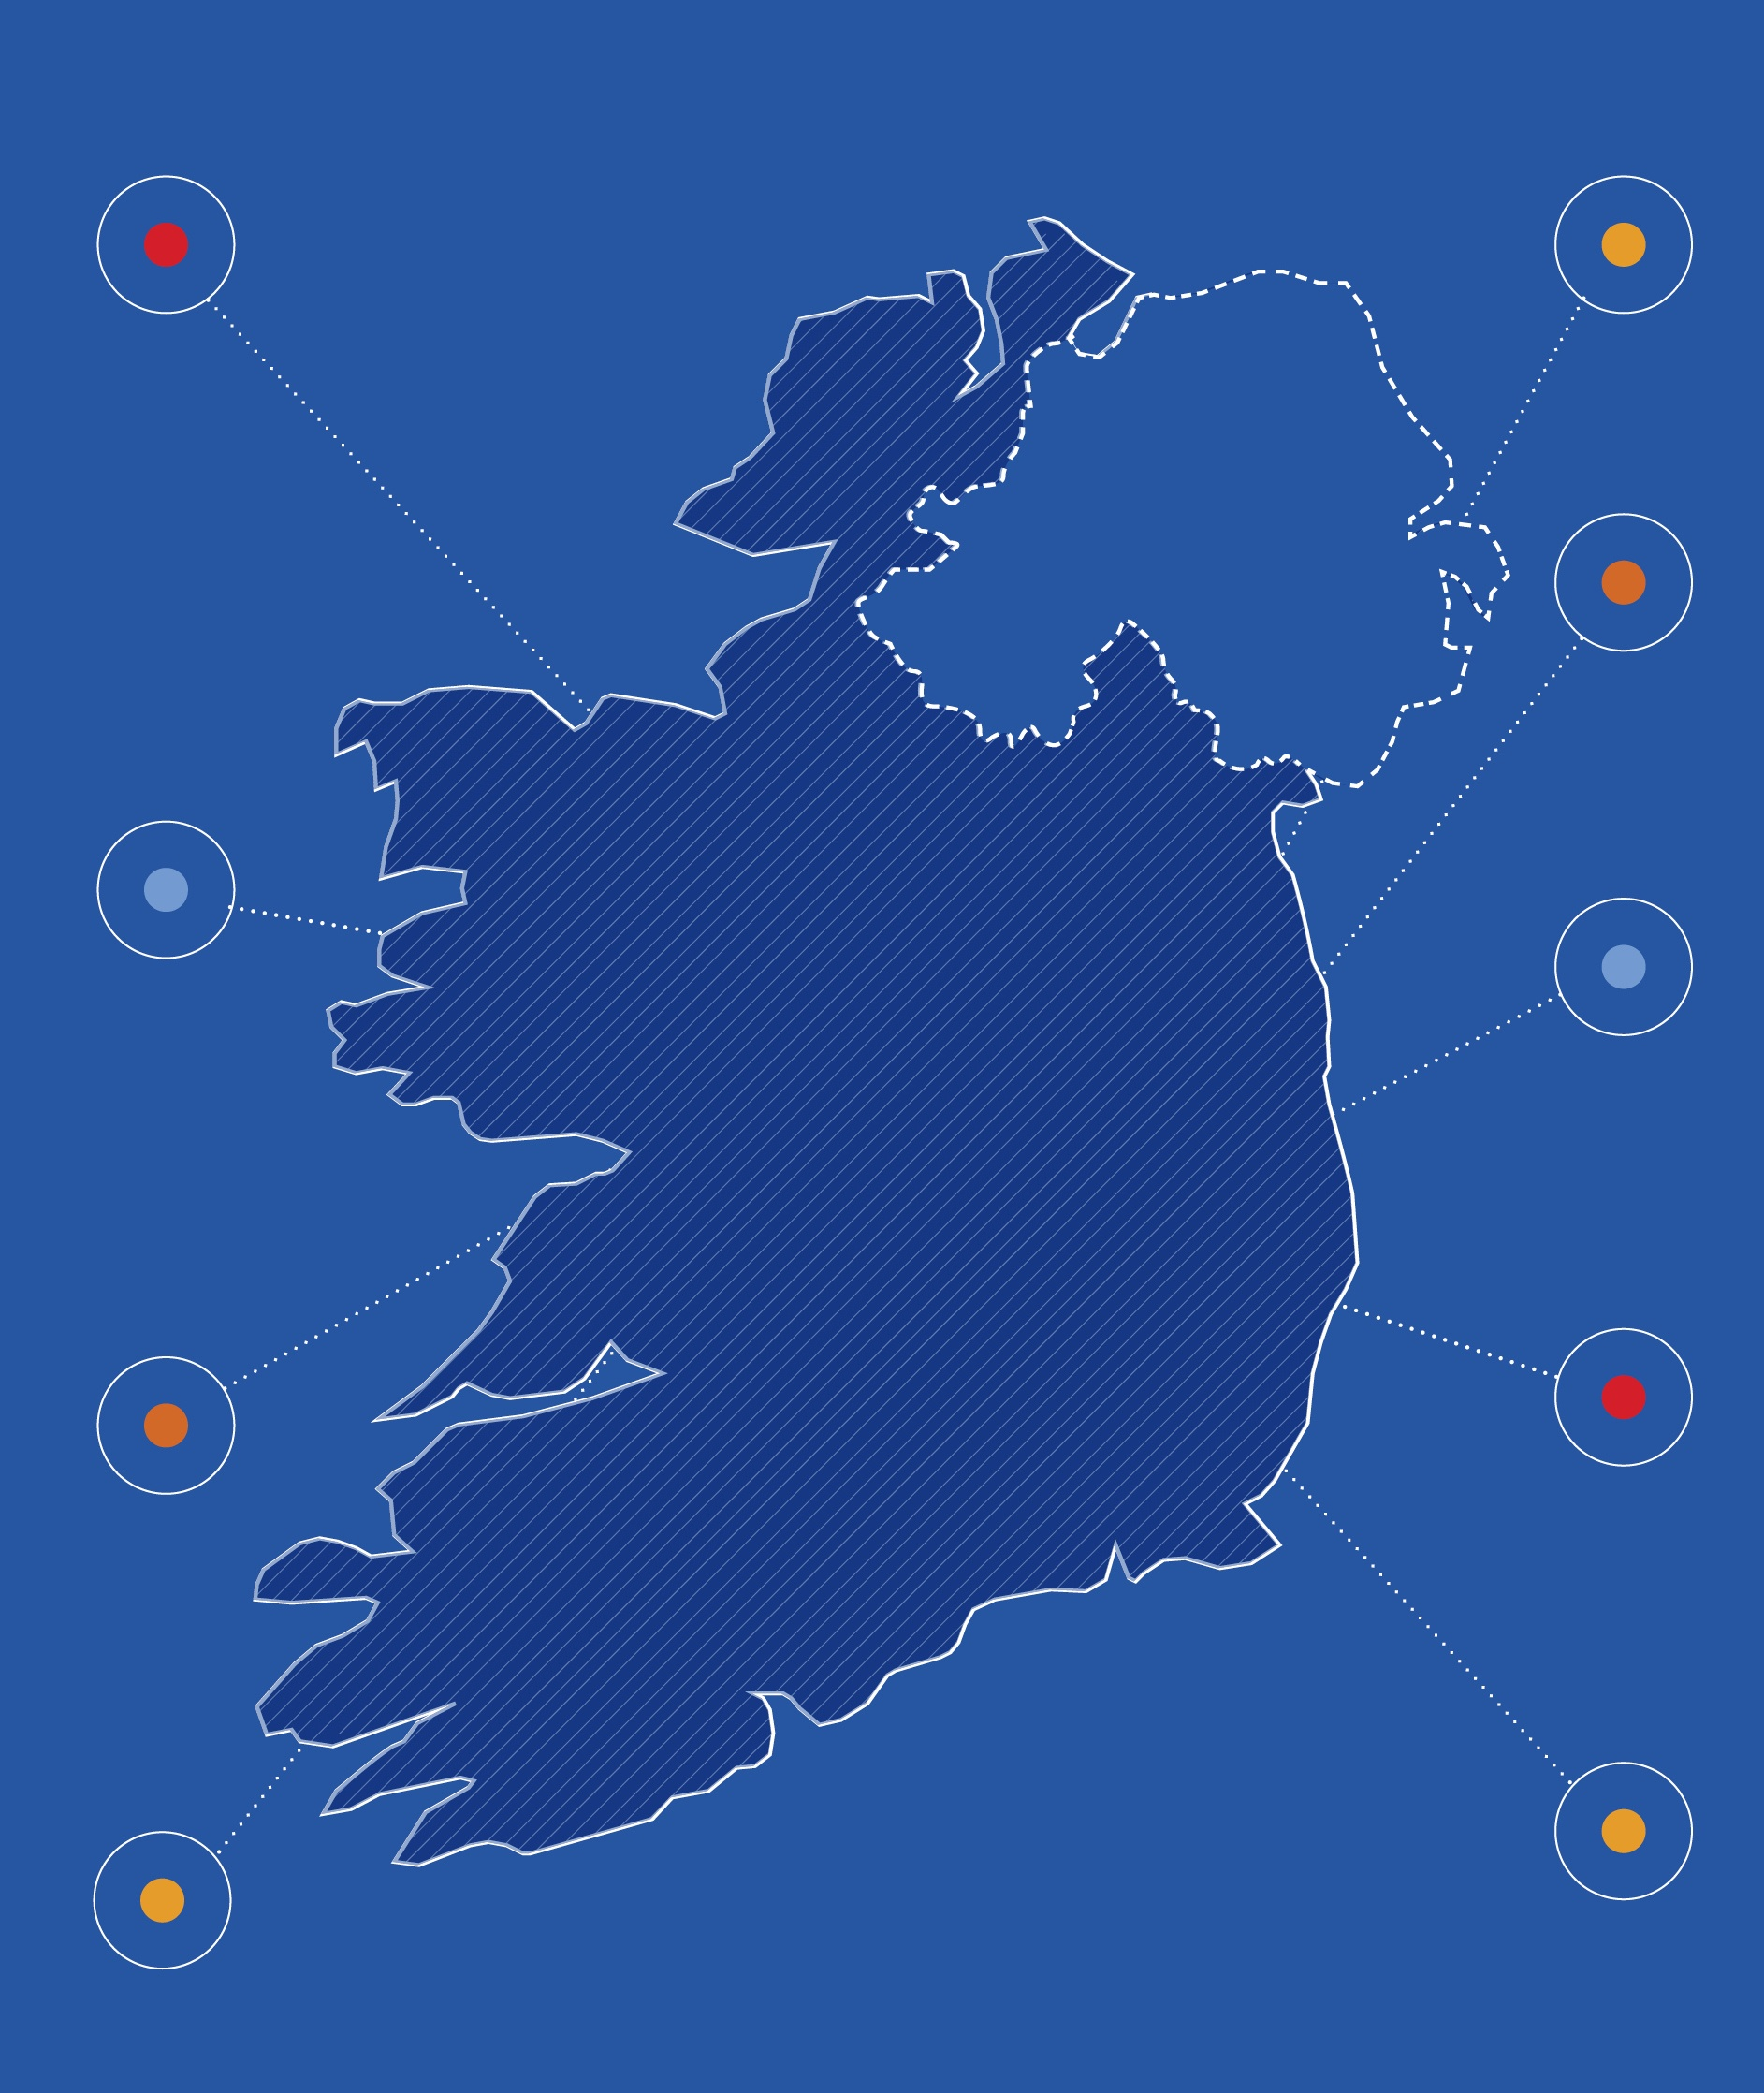 Map of Ireland with Points No Text.jpg